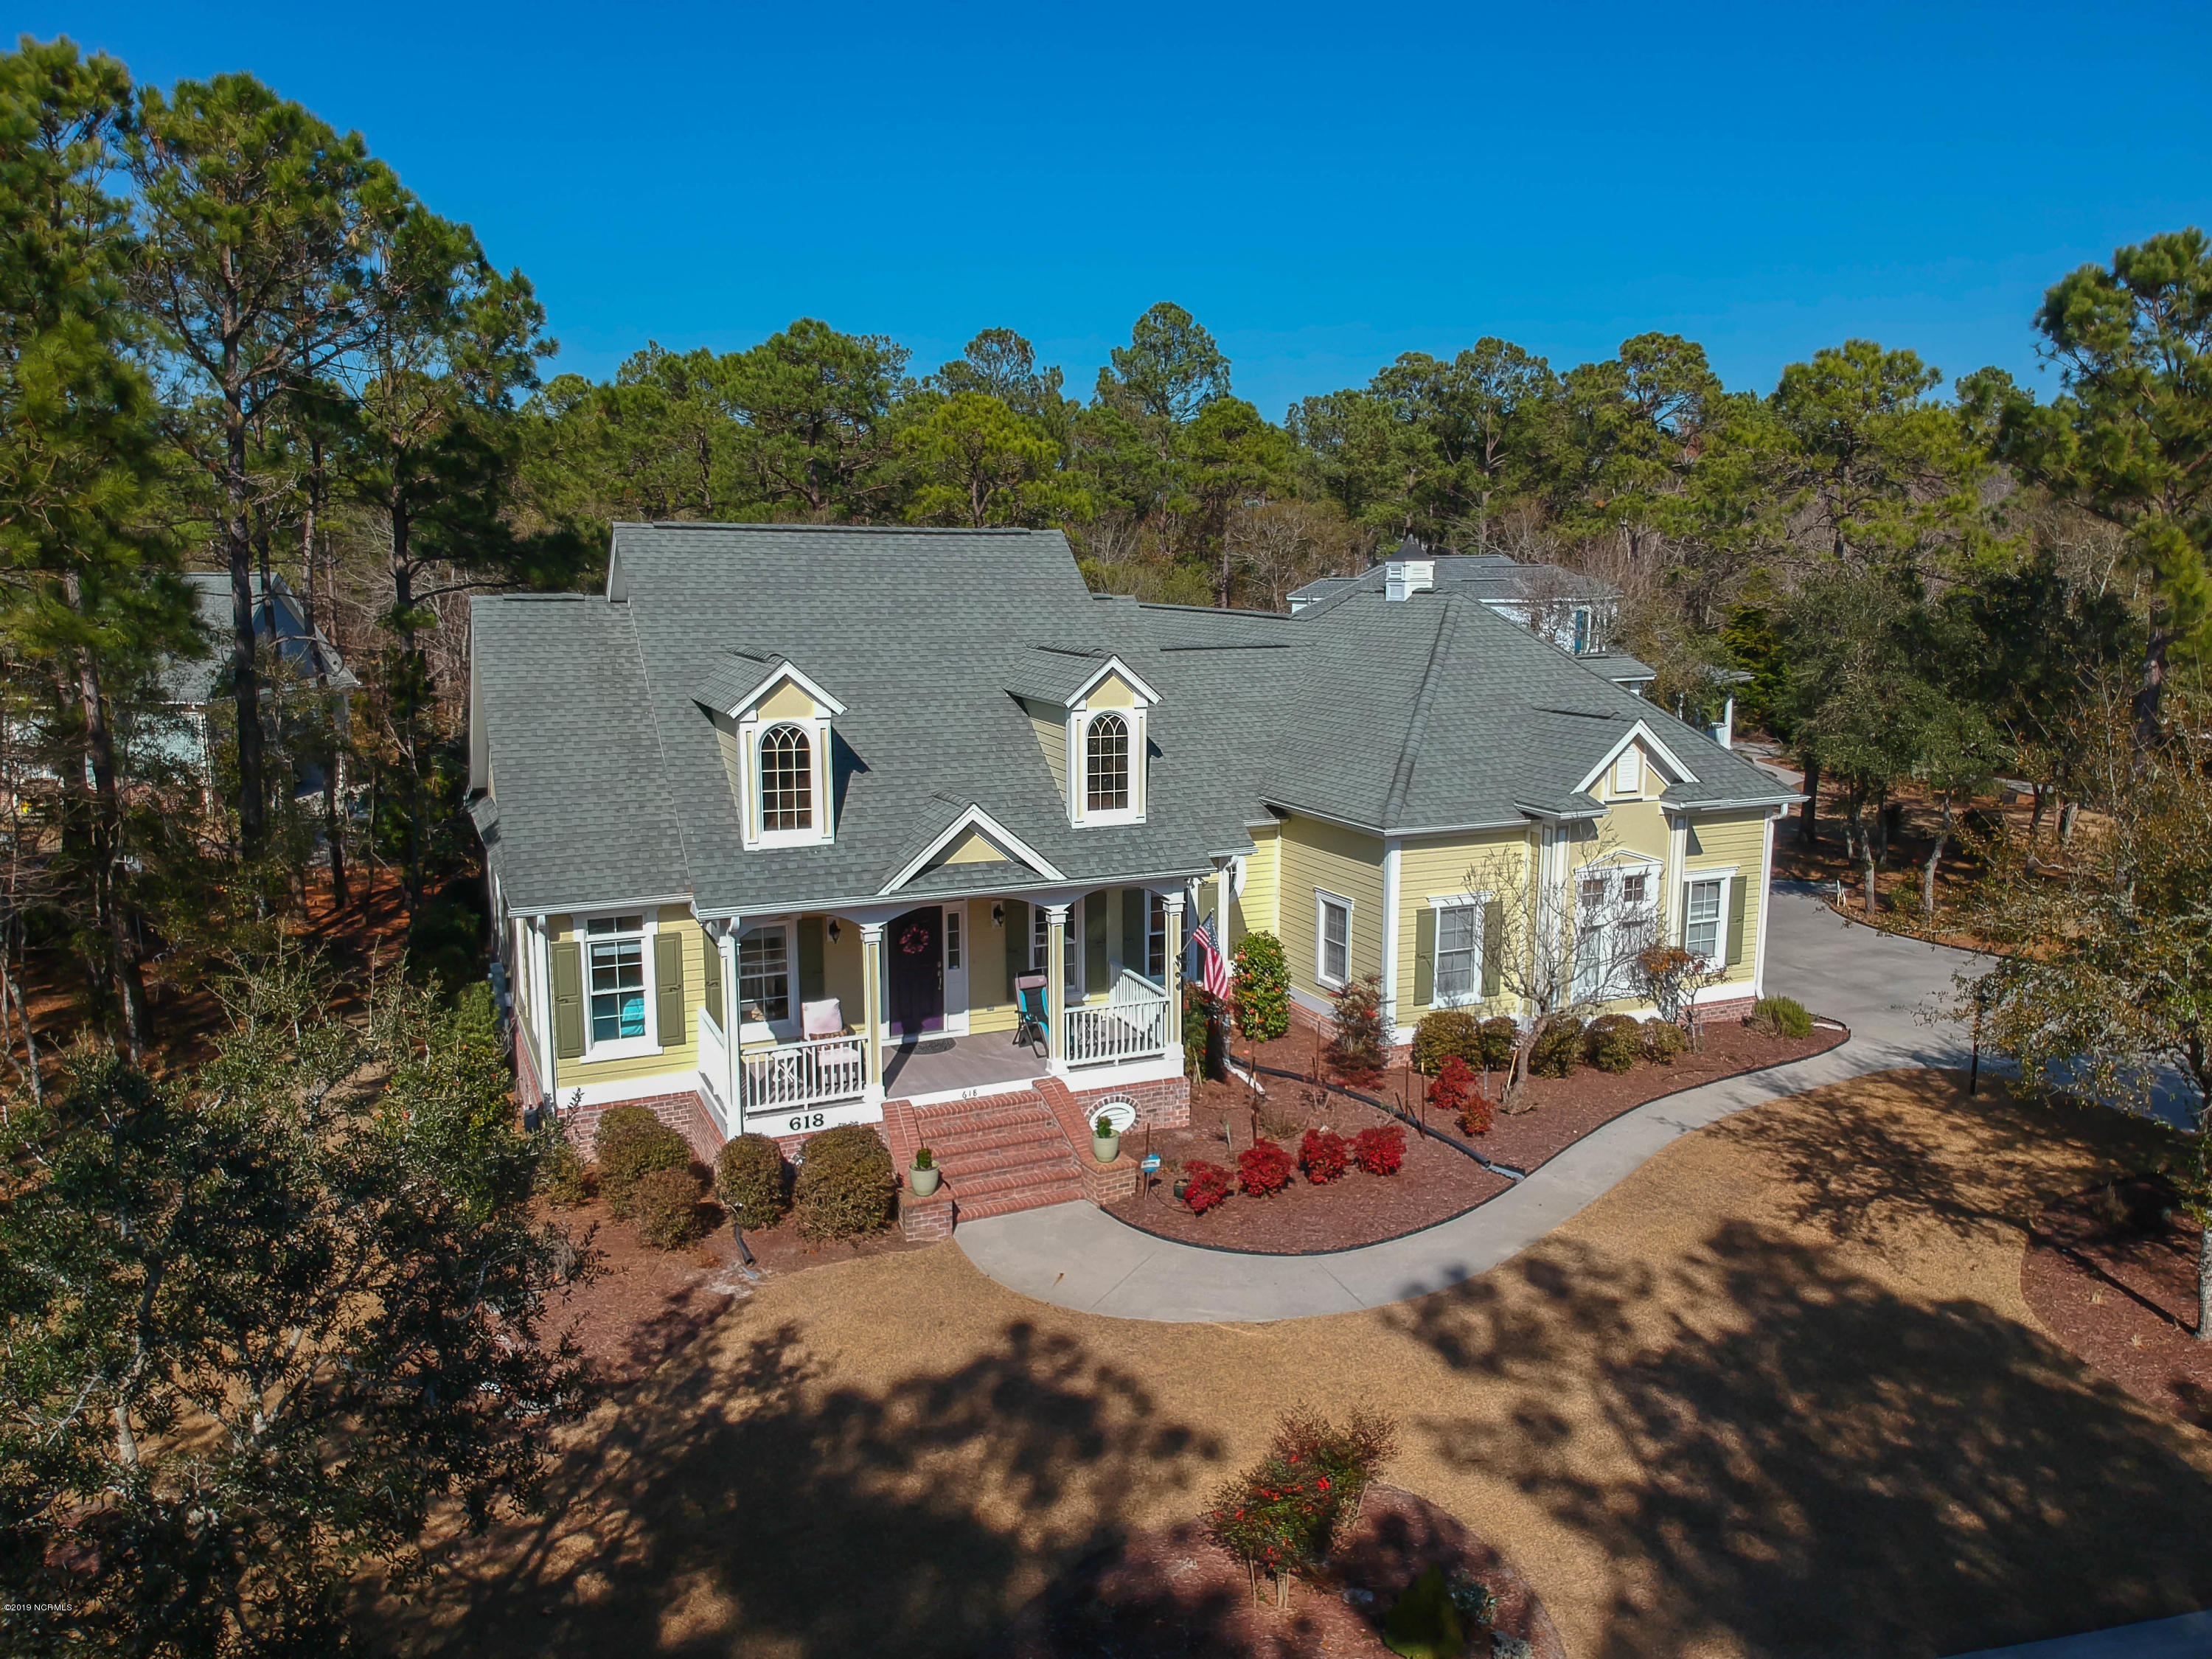 Carolina Plantations Real Estate - MLS Number: 100149692